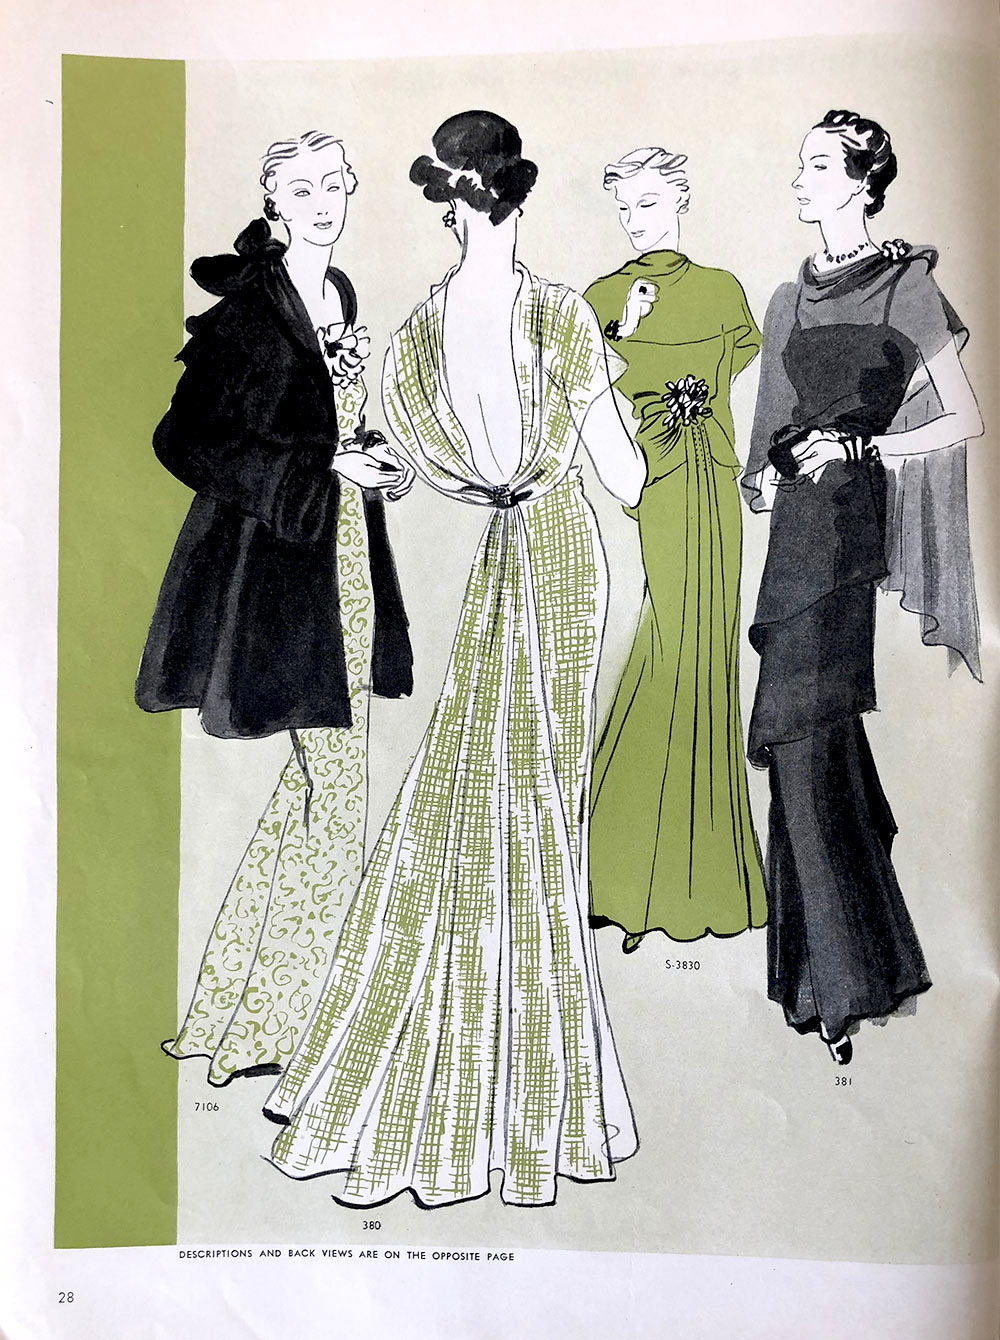 Vogue Pattern Book - Oct - Nov 1935